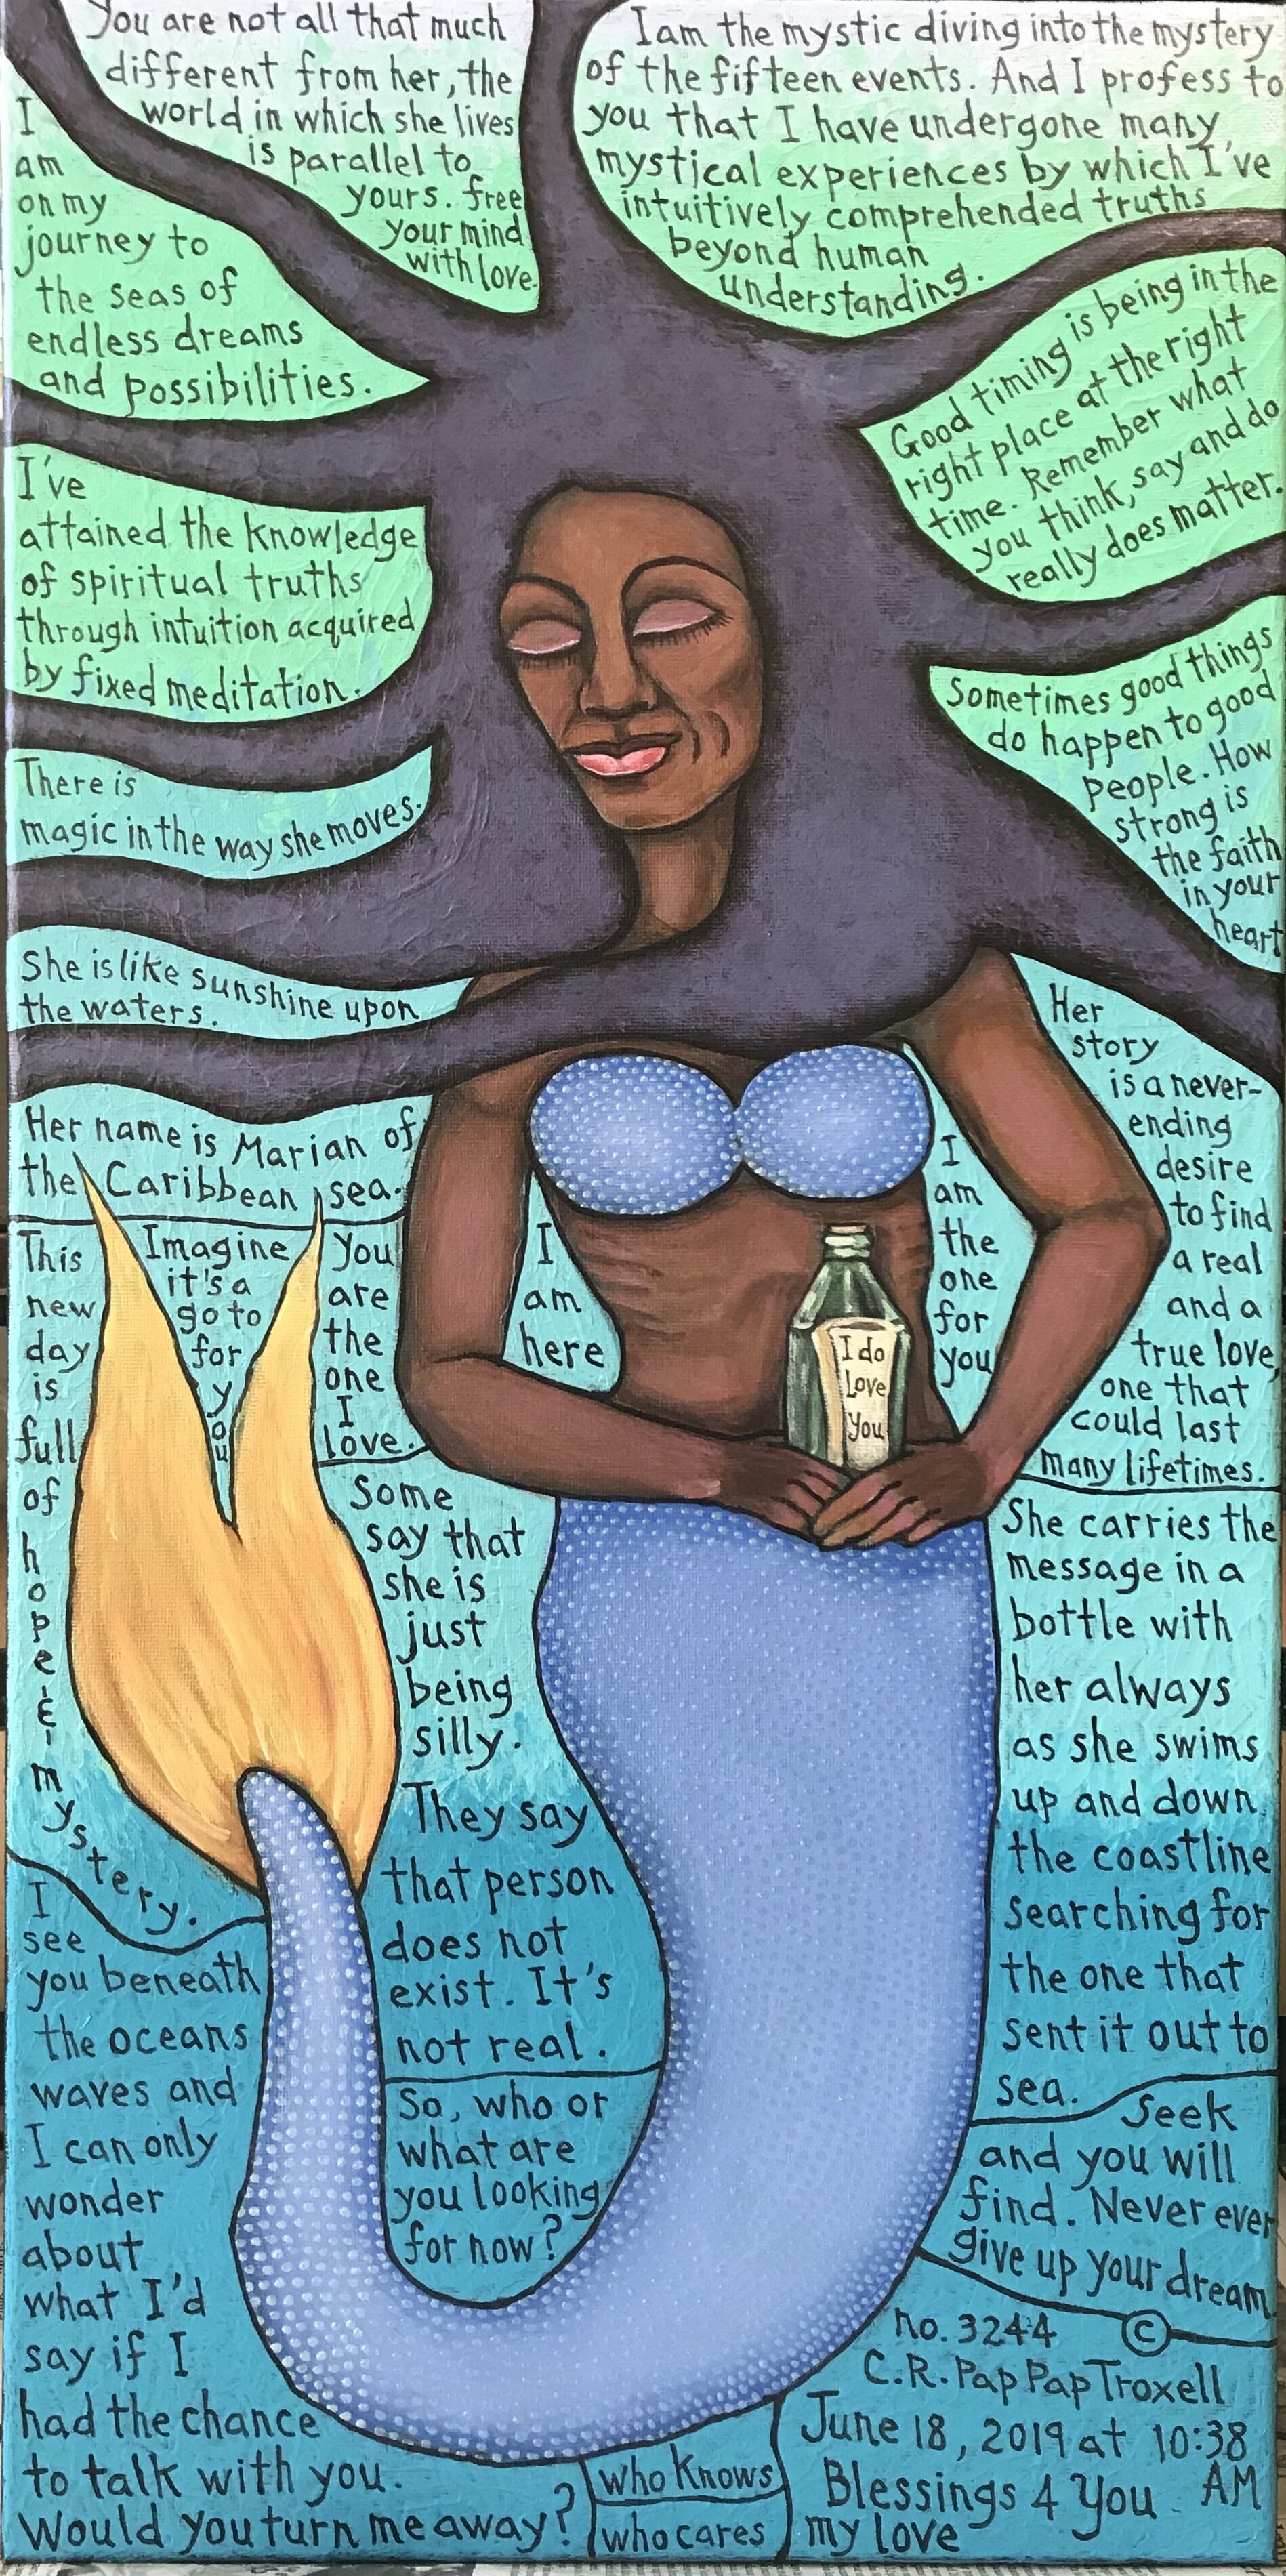 No. 3233 Mermaid with Message in a Bottle.jpg